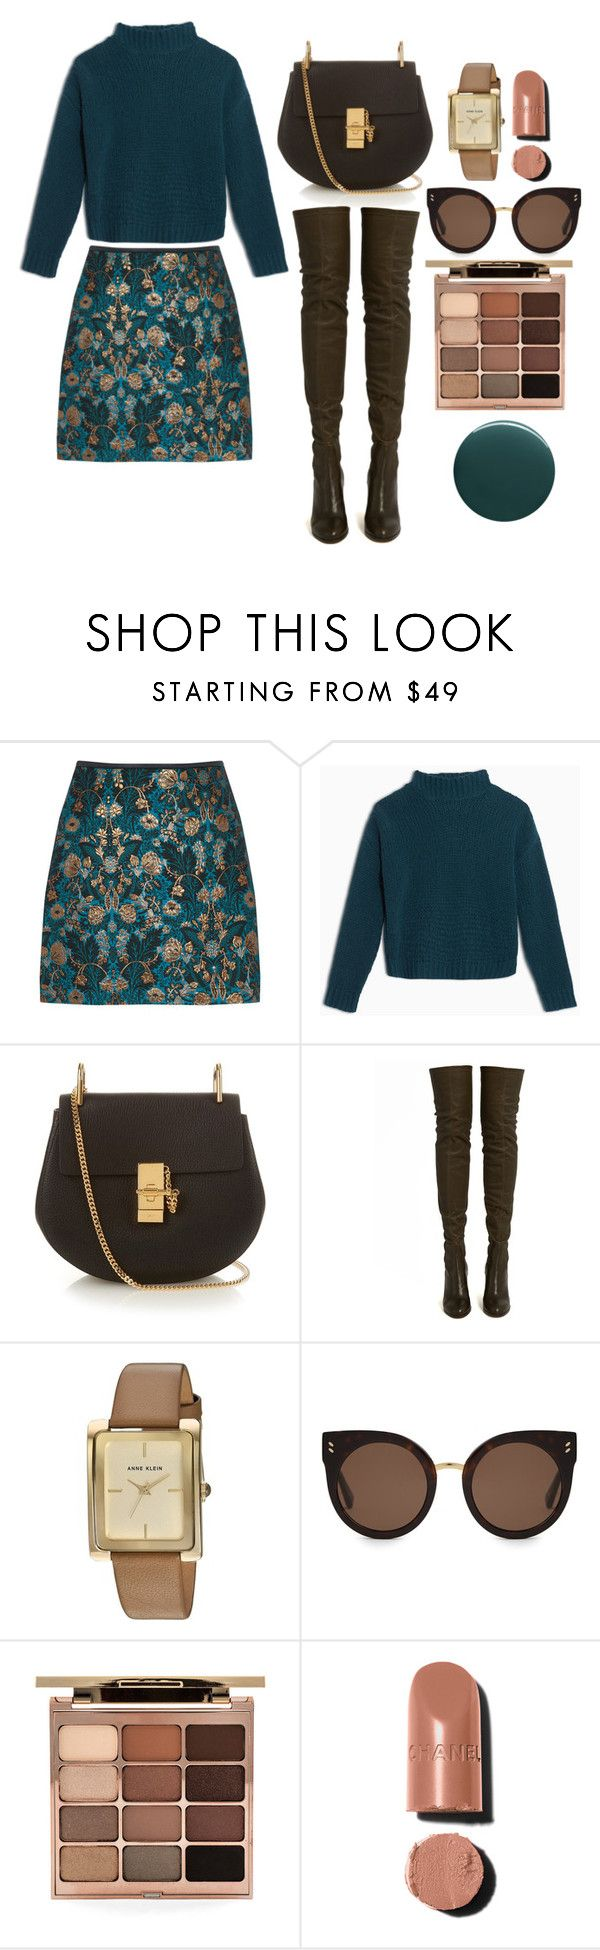 """brown&teal"" by nover on Polyvore featuring Max&Co., Chloé, ALEXA WAGNER, Anne Klein, STELLA McCARTNEY, Stila and Deborah Lippmann"